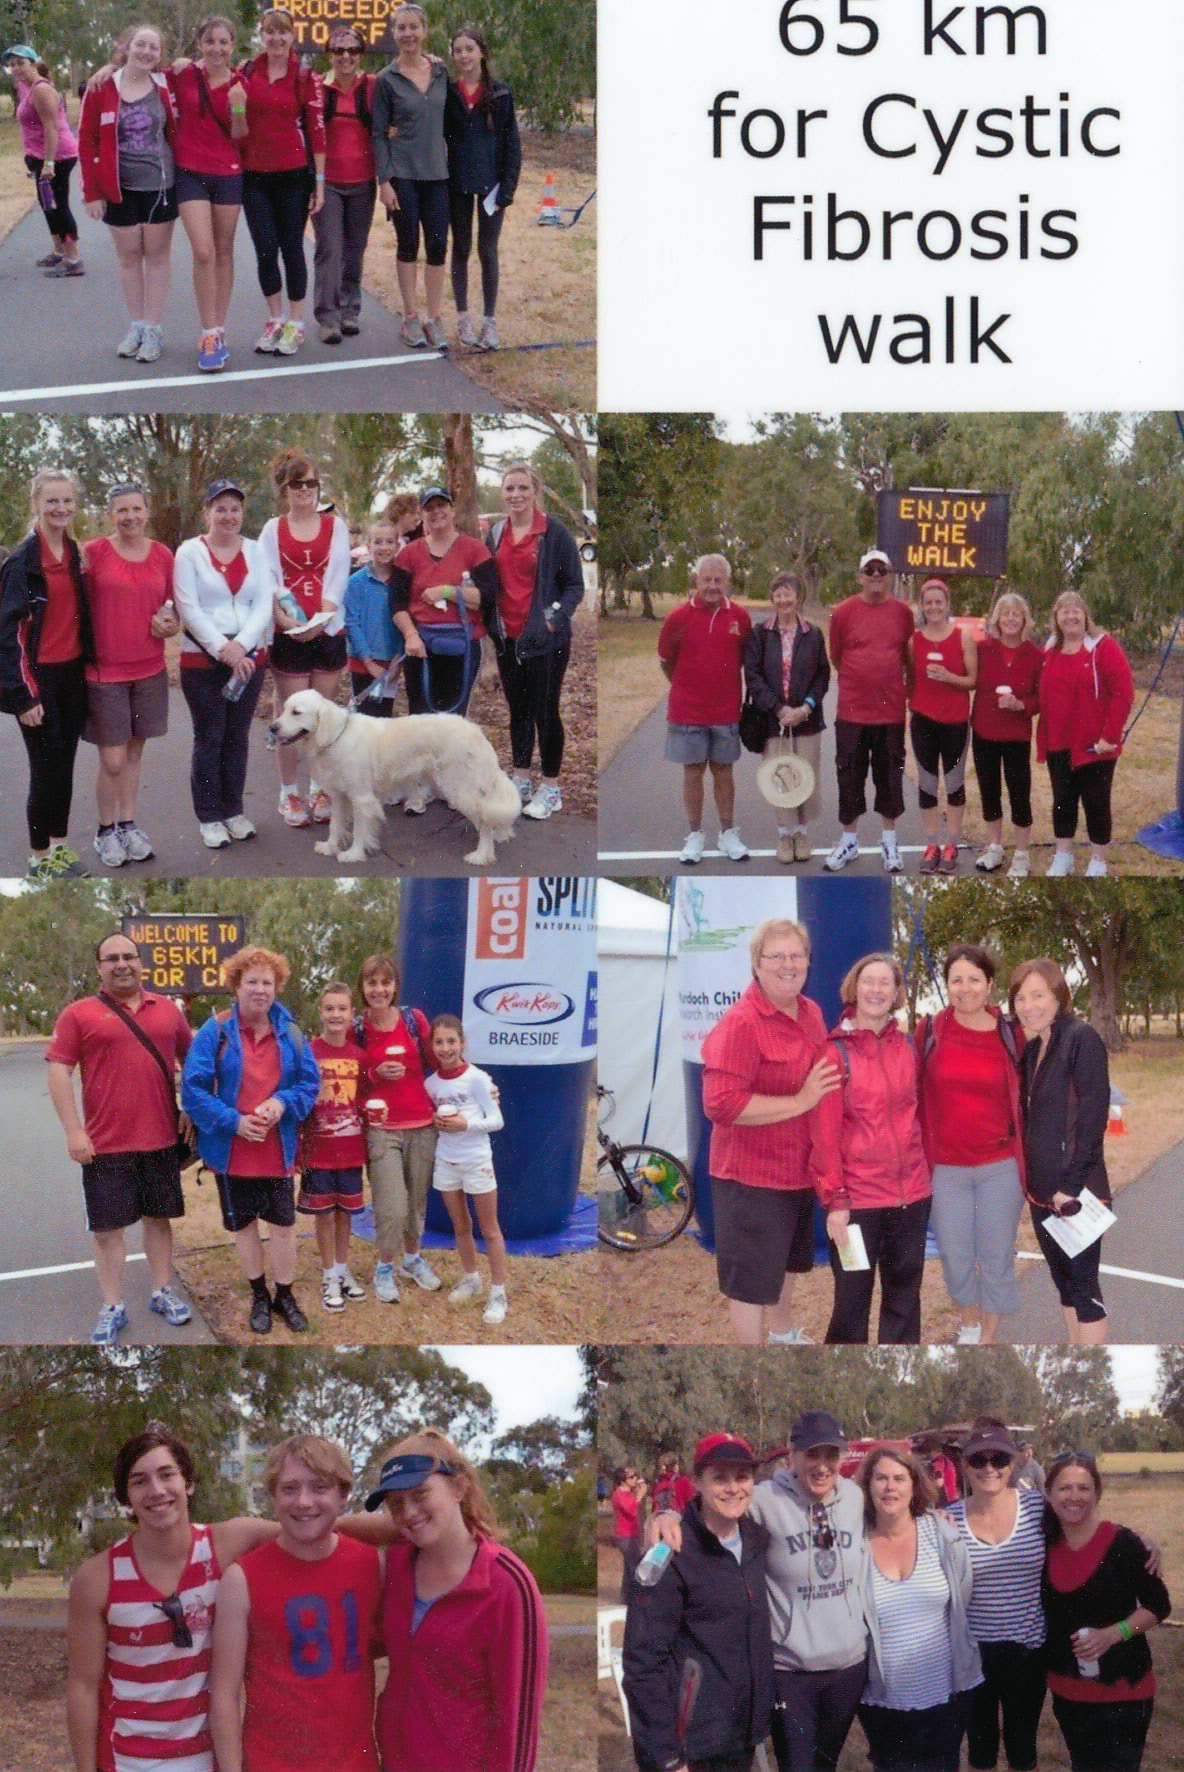 65km for Cystic Fibrosis GEN teams 2014.jpg